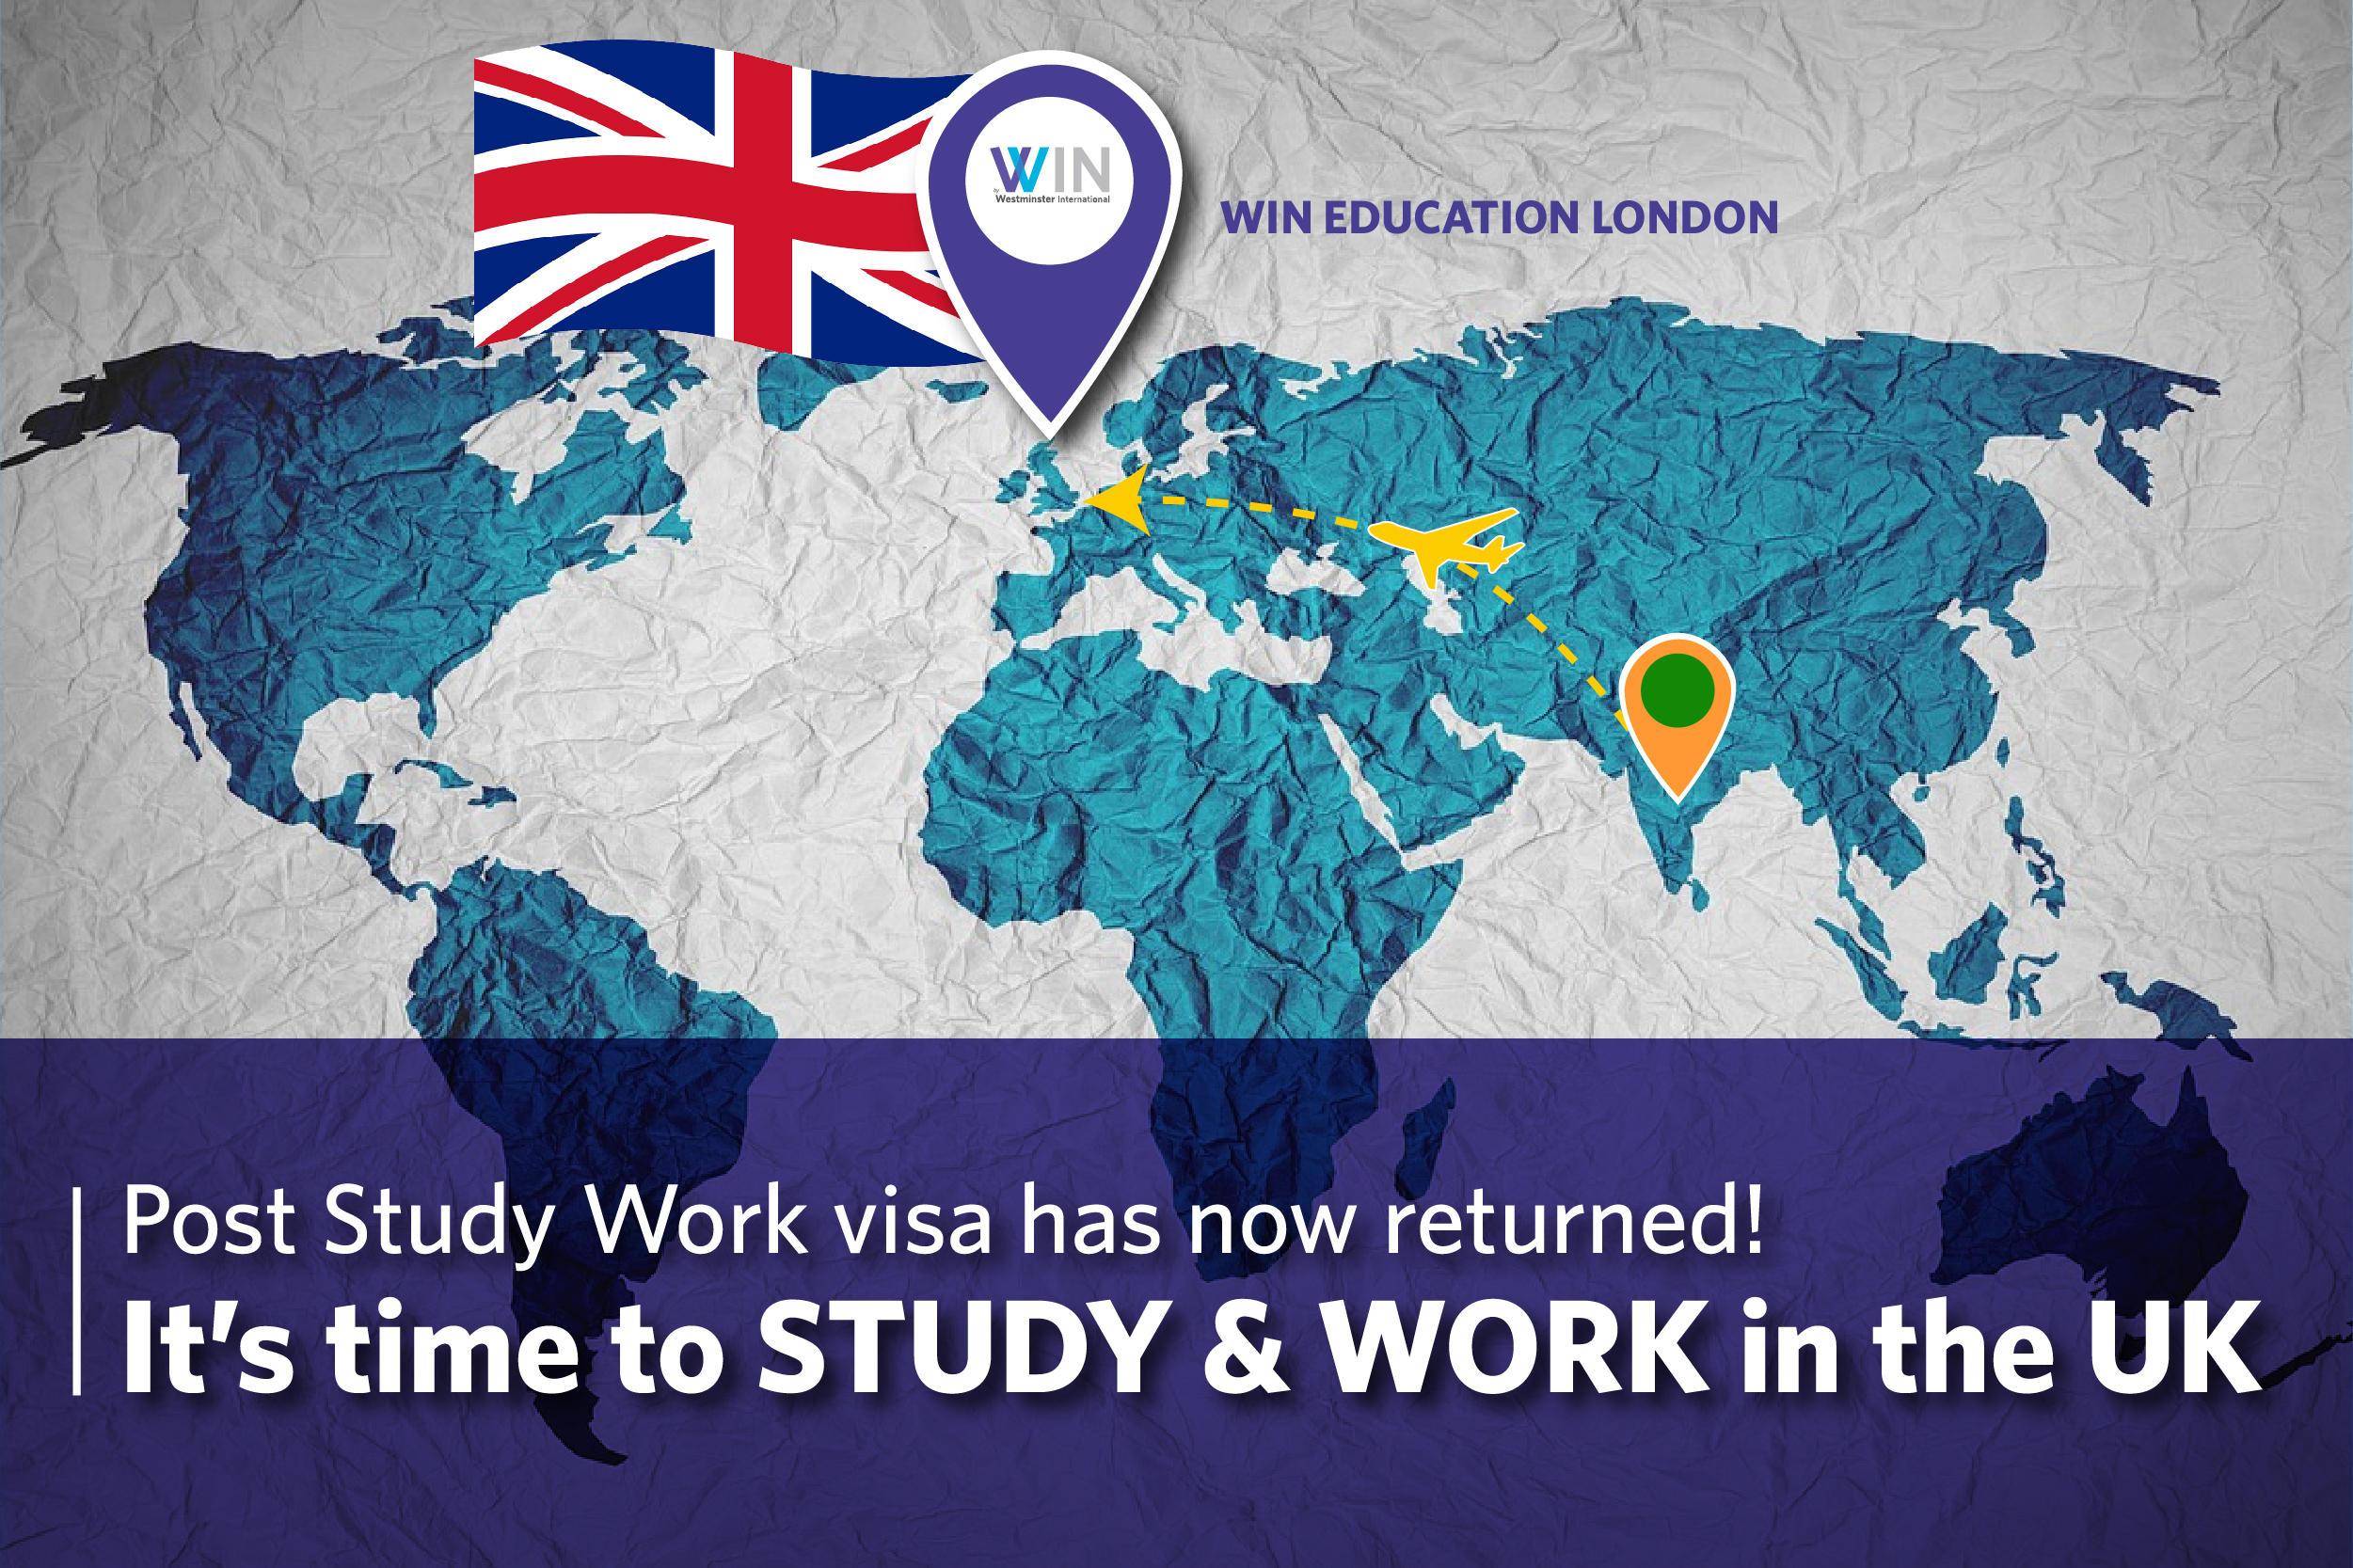 Post Study Work visa has now returned! It's time to STUDY & WORK in the UK